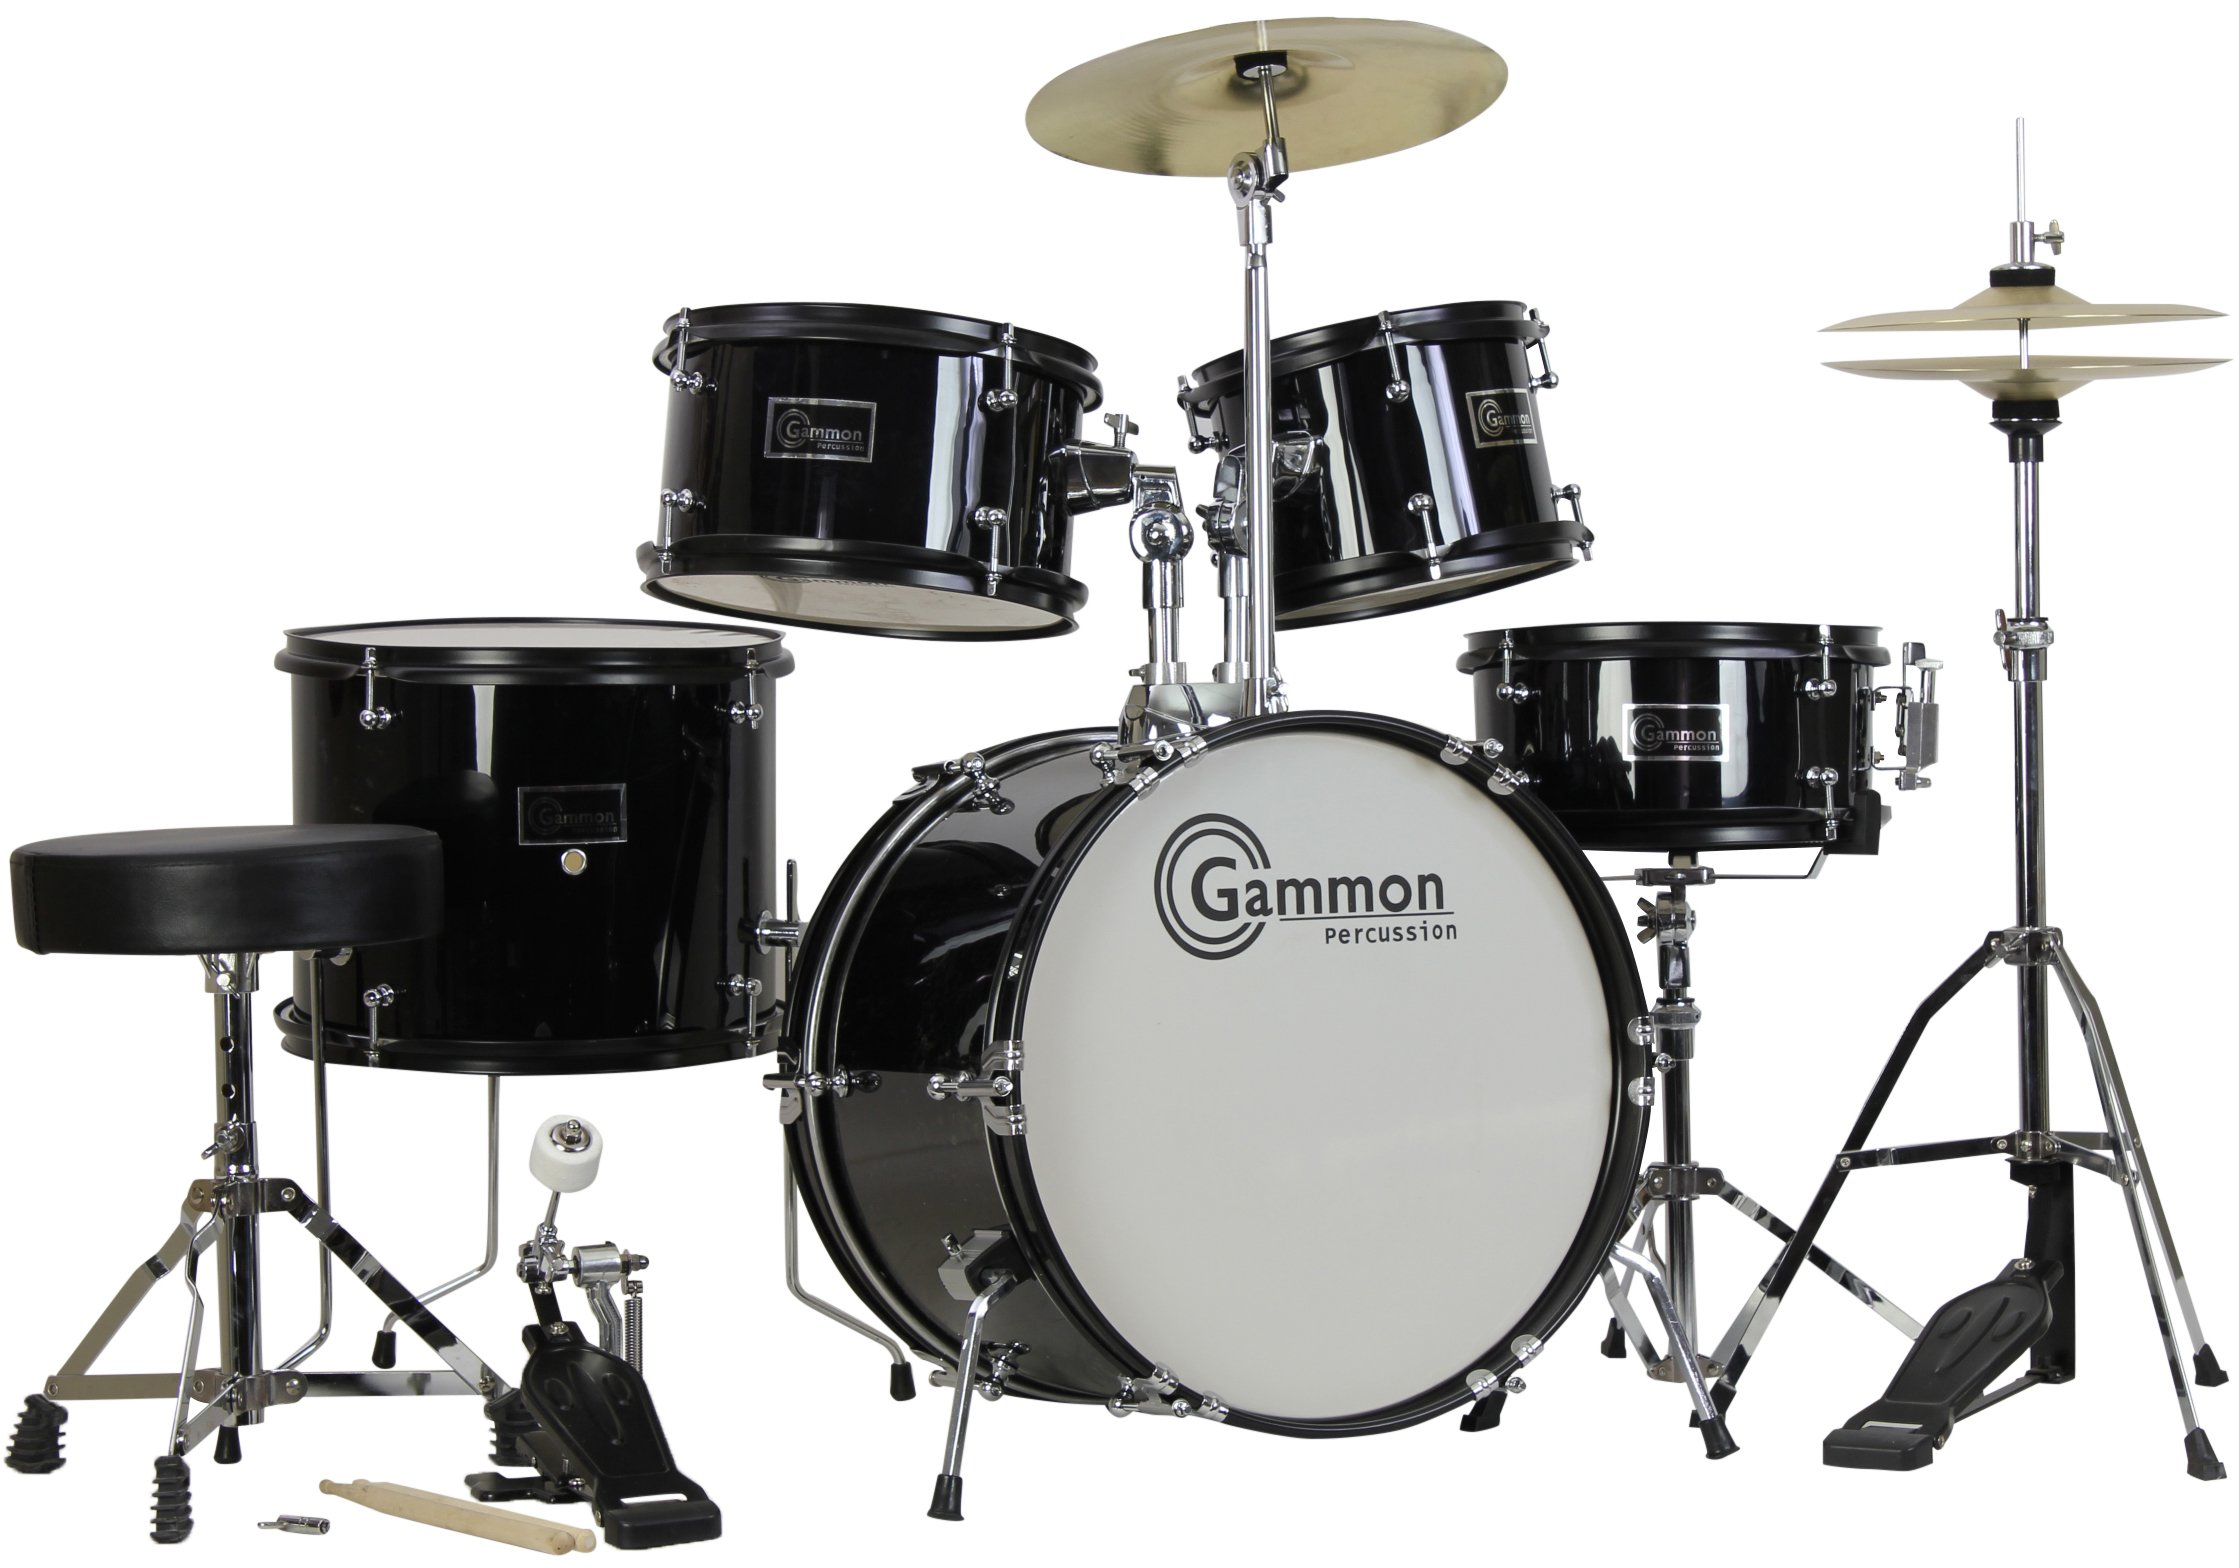 Gammon 5-Piece Junior Starter Drum Kit with Cymbals, Hardware, Sticks, & Throne - Black by Gammon Percussion